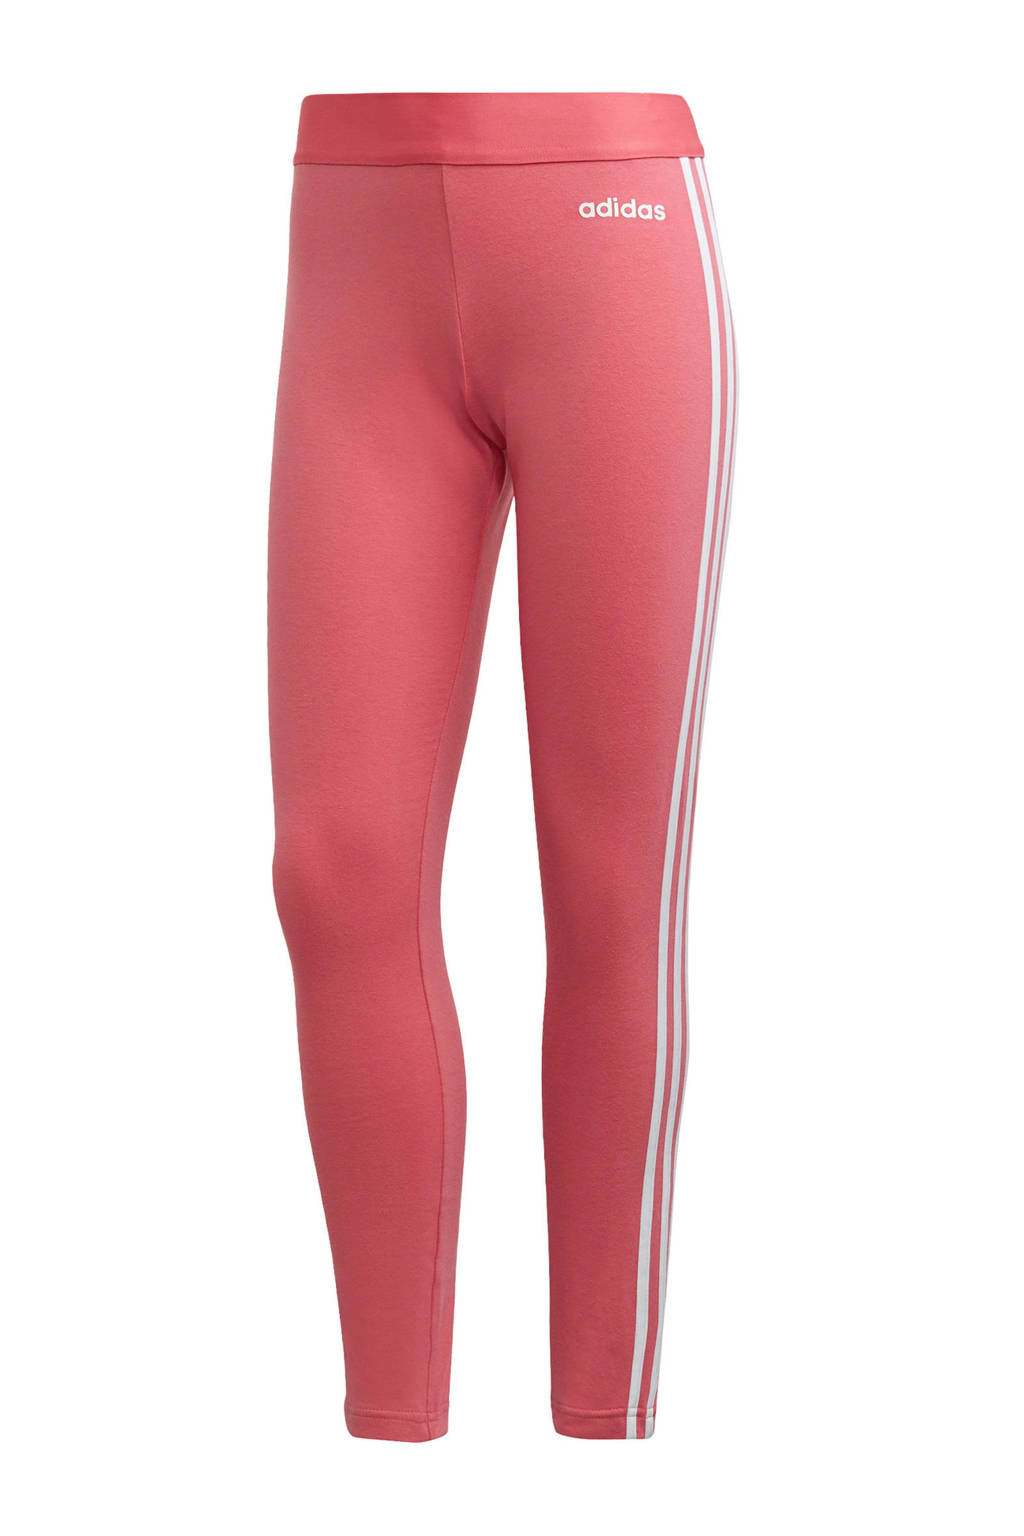 adidas performance sportbroek roze, Roze/wit